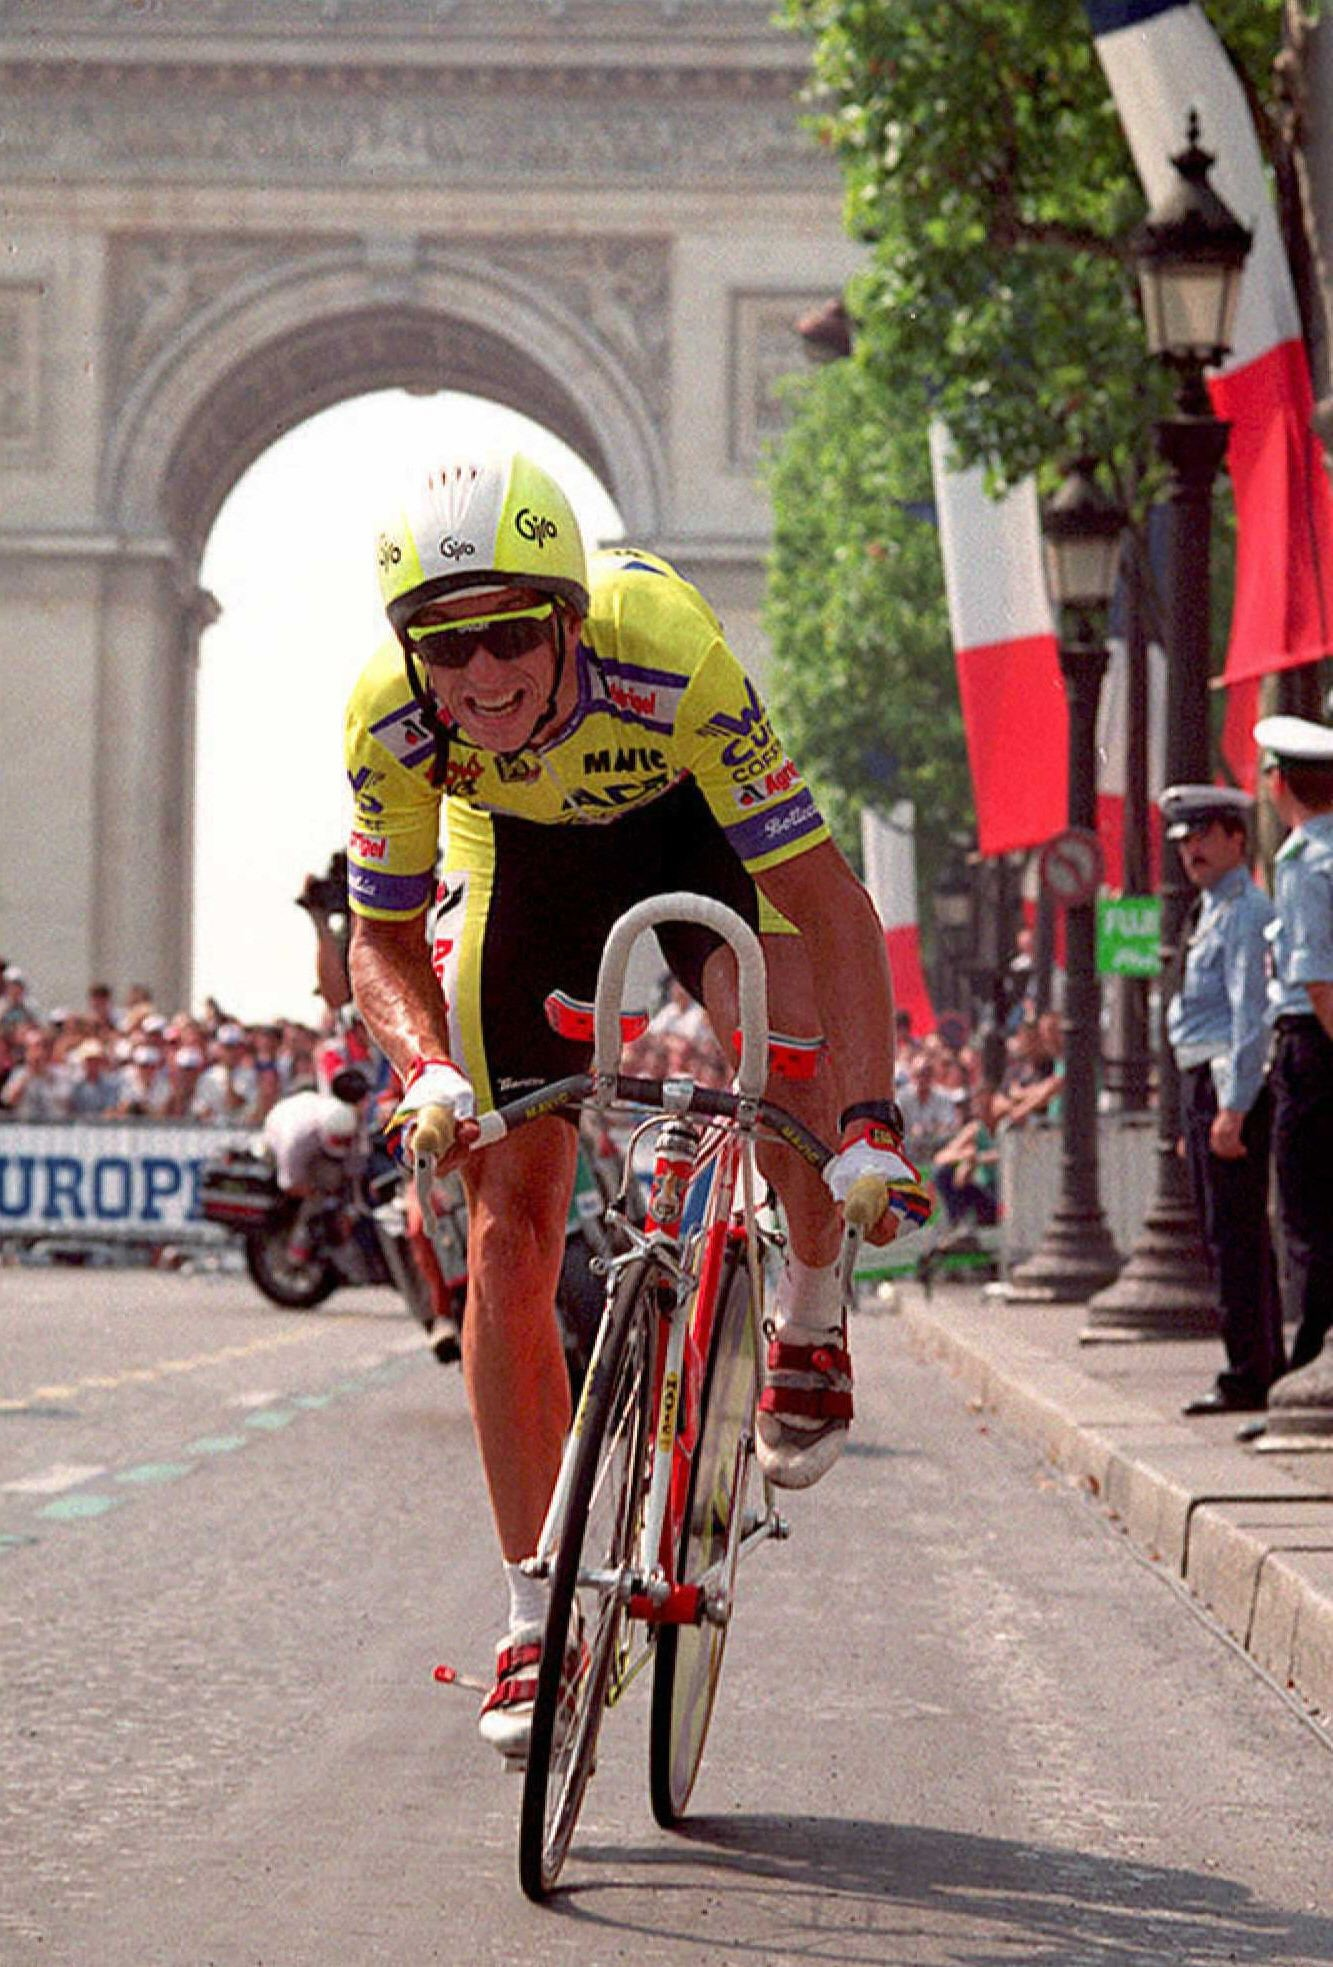 Greg LeMond - Tour de France 1989